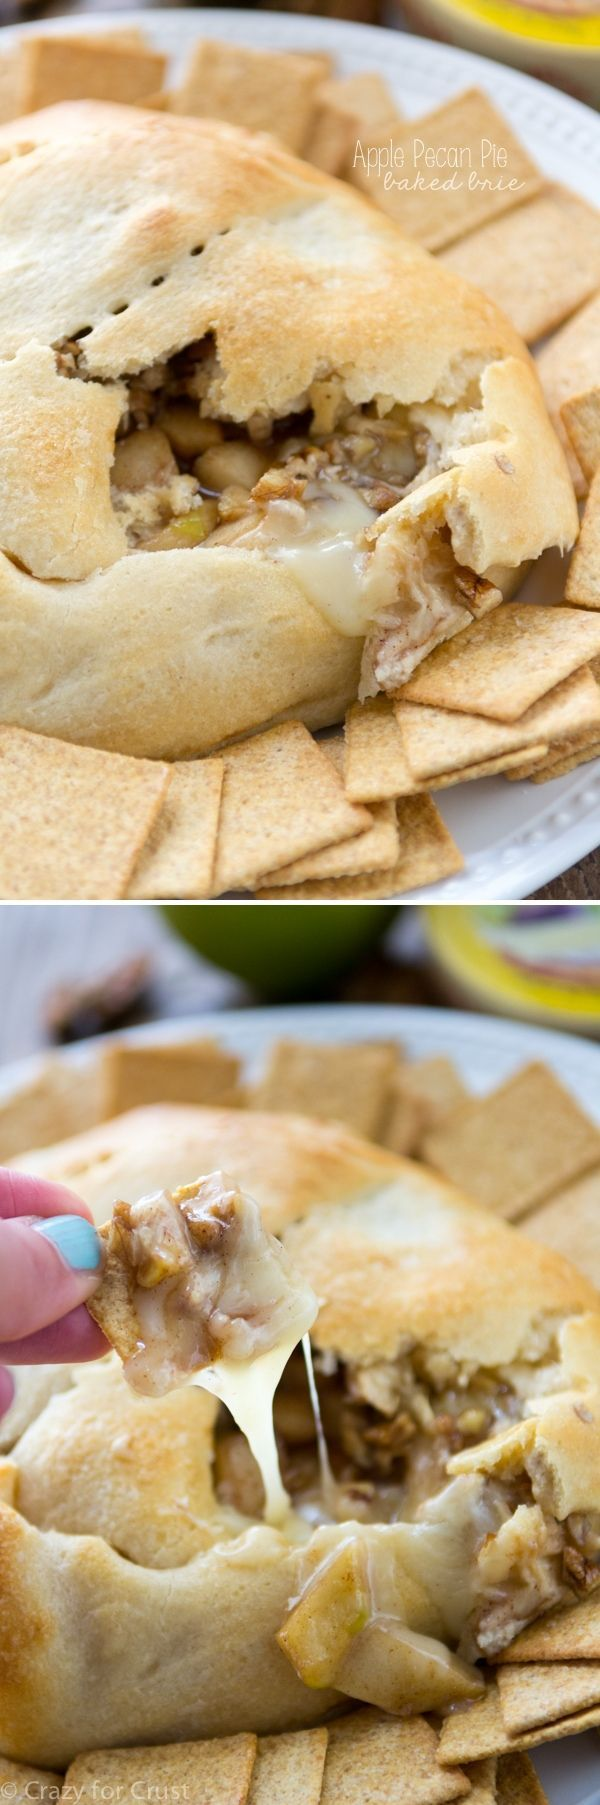 The best party appetizer ever is this  recipe for Apple Pecan Pie Baked Brie! Brie, apples, pecans, and brown sugar are baked in crescent rolls for a gooey sweet snack!